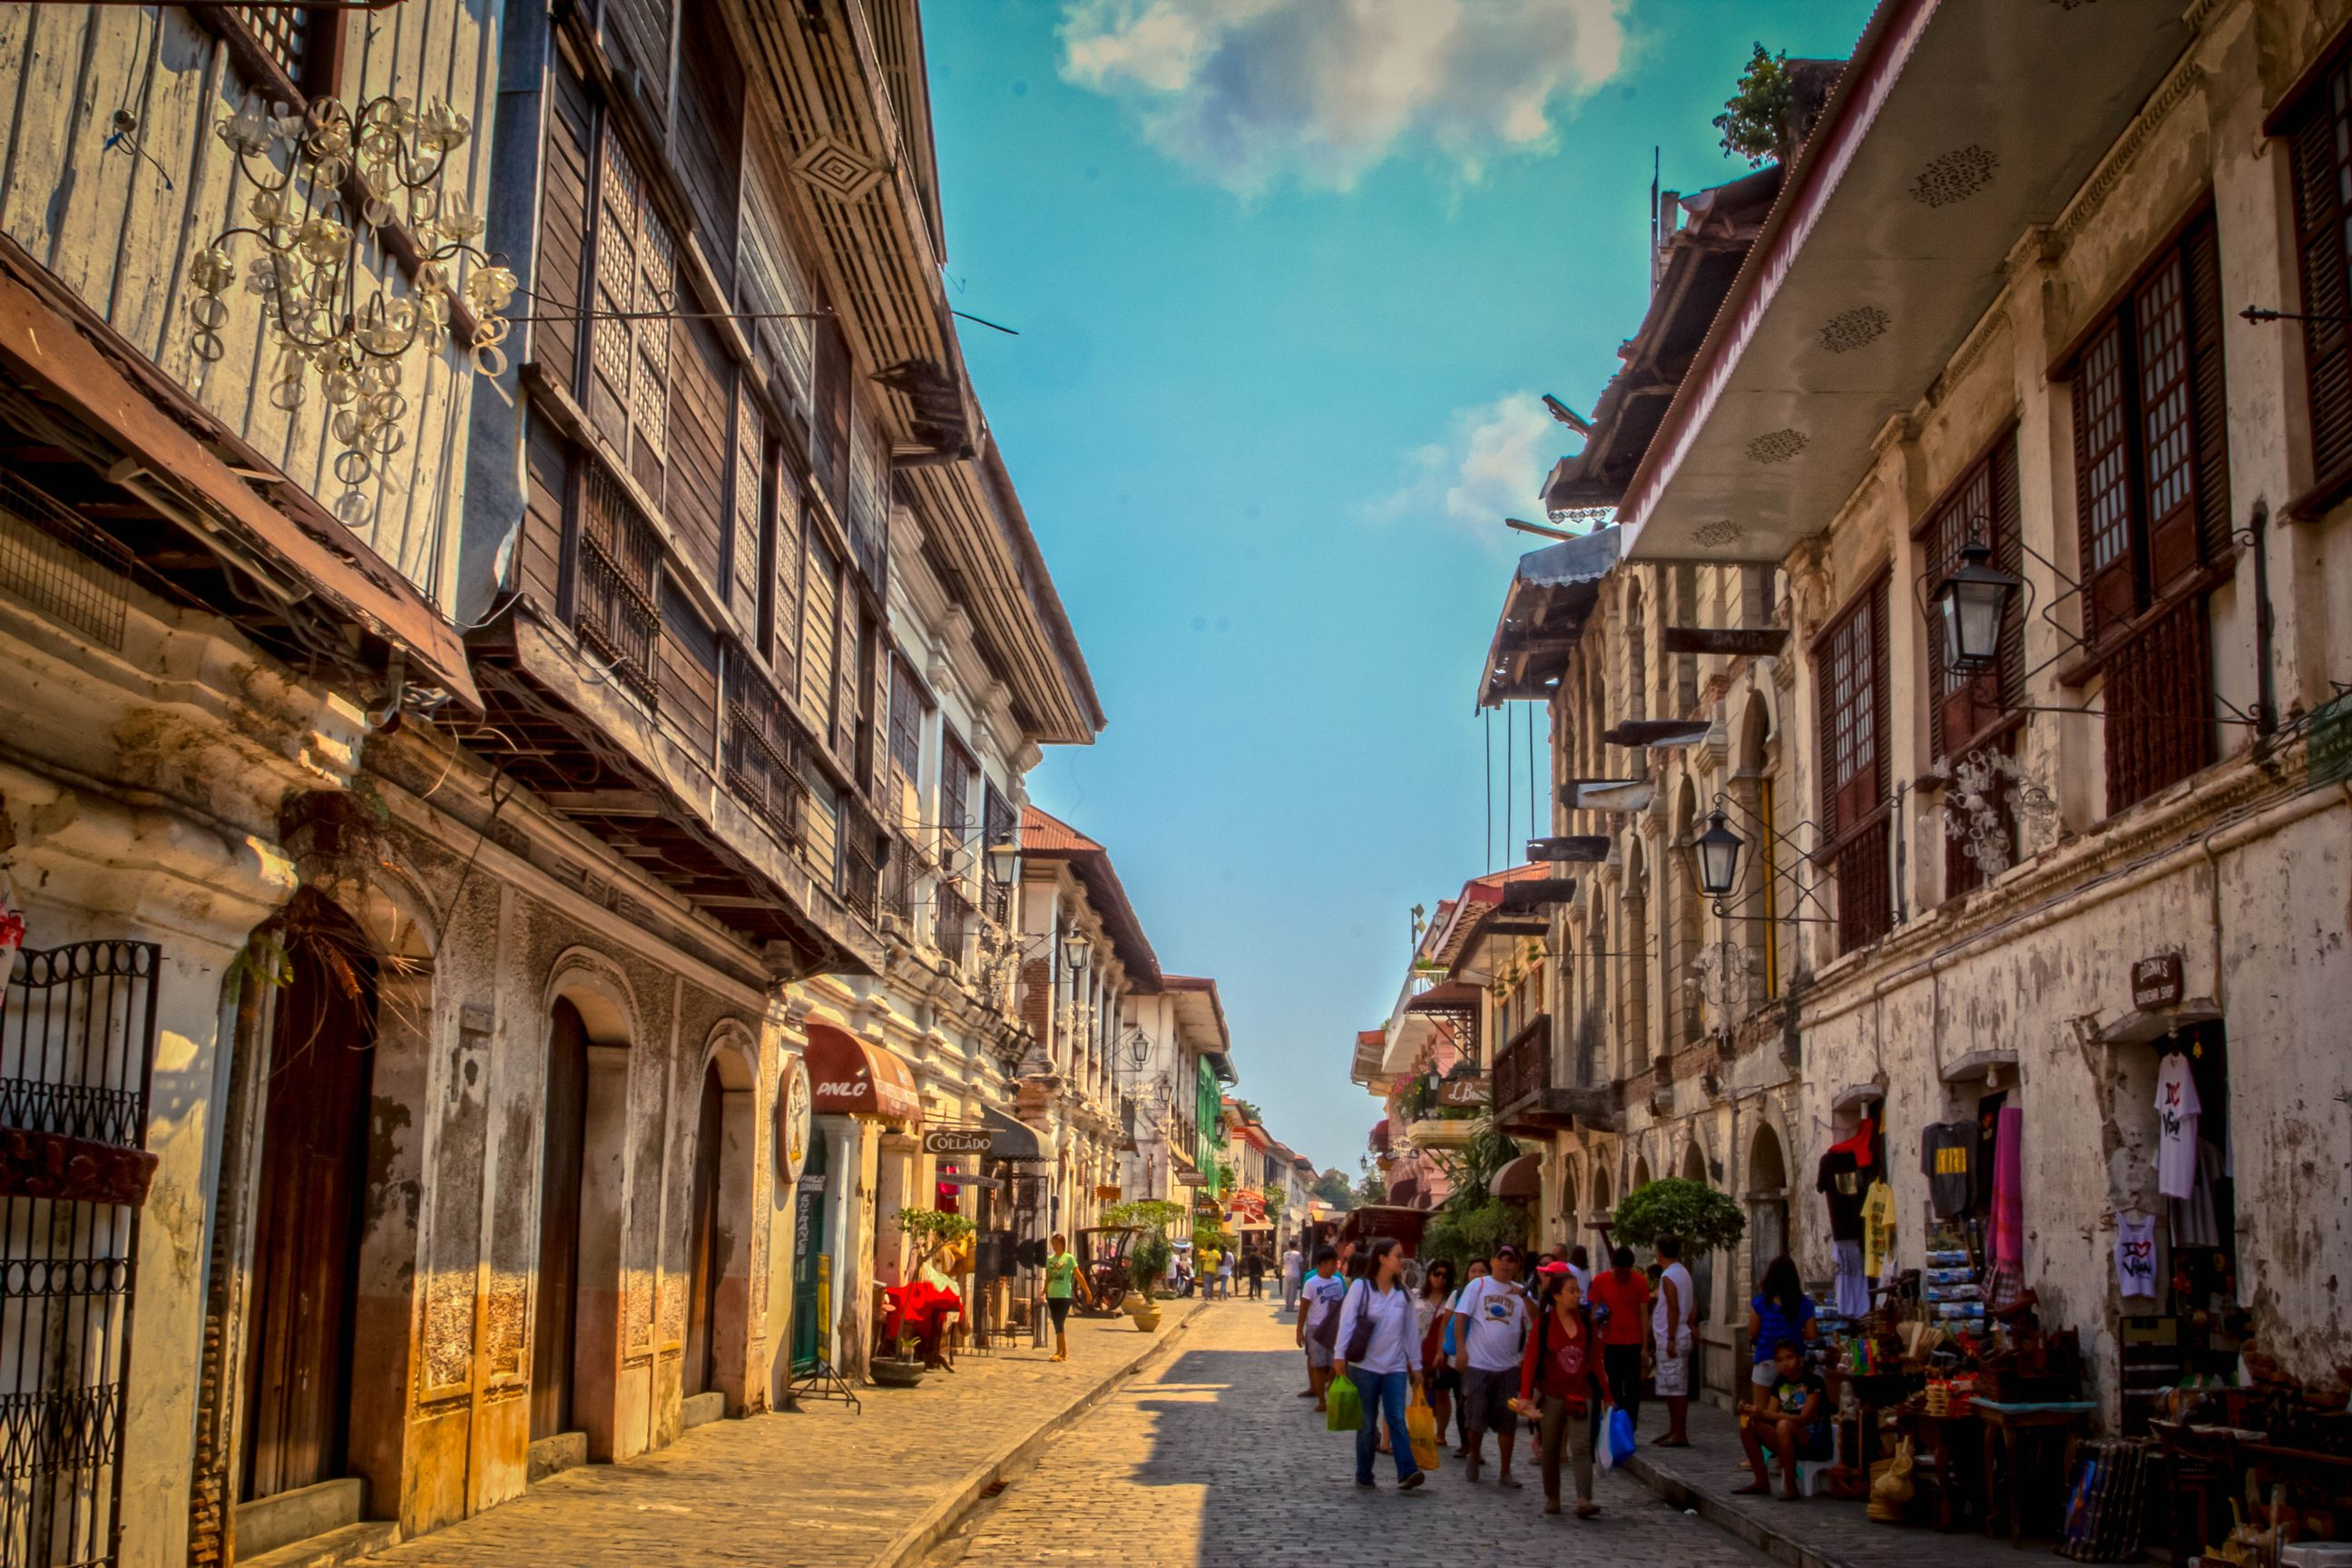 Tourists walk along a cobbled street lined with old Spanish colonial houses in Vigan City, one of the most amazing places to visit in the Philippines